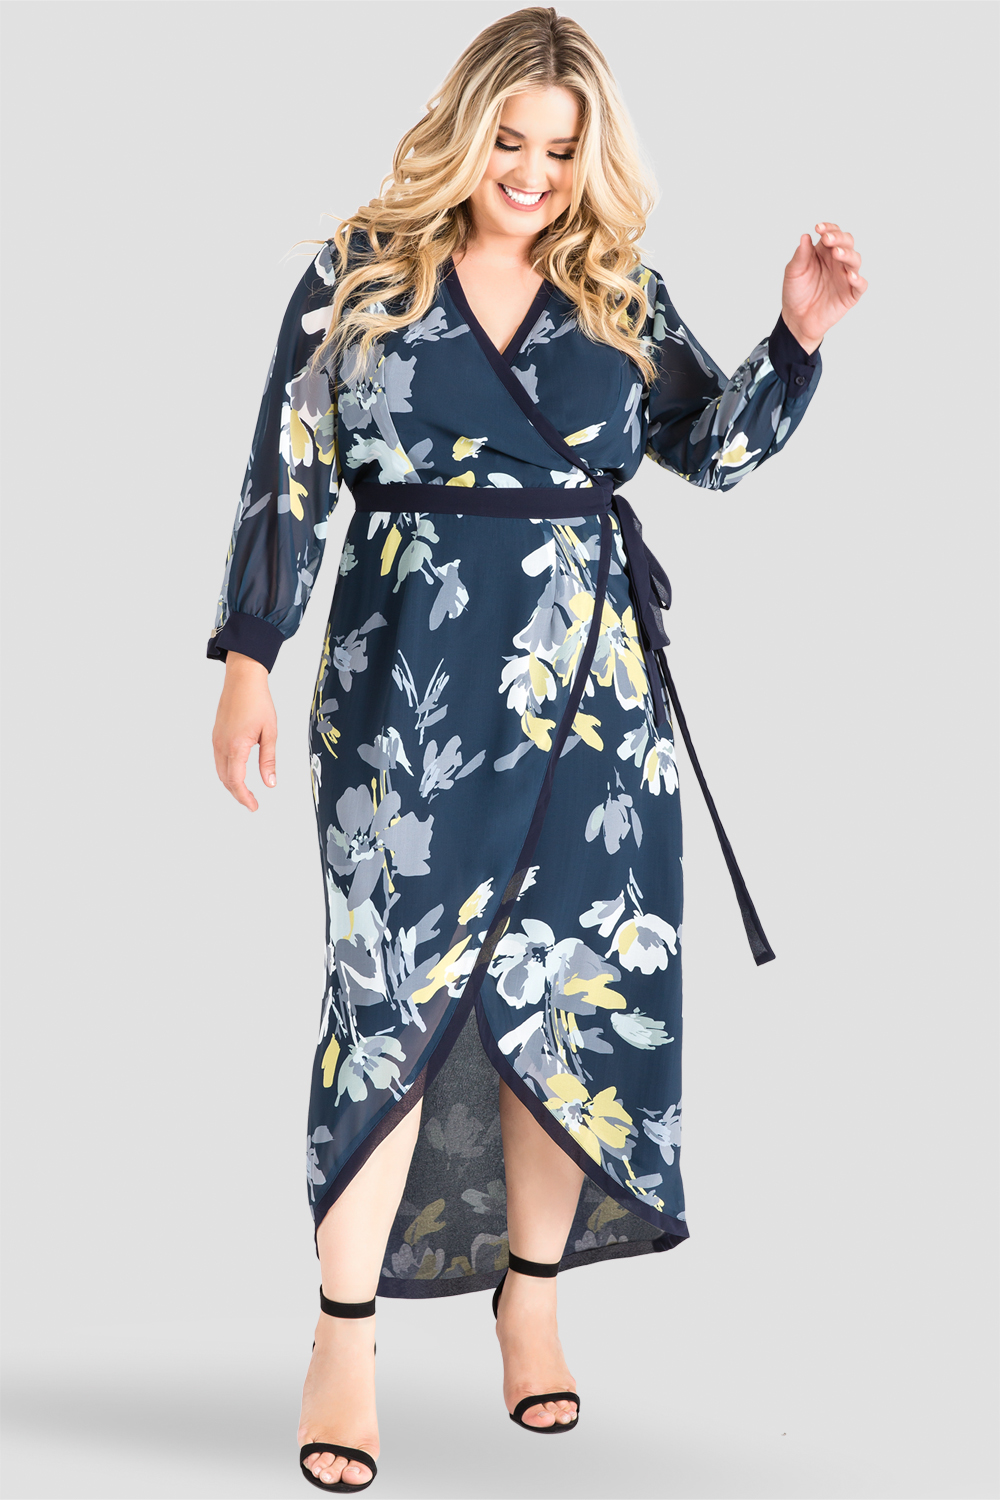 f0ad632f61c Plus Size Standards   Practices Women s Navy Floral Print Wrap High-Low  Dress. now. 1 4